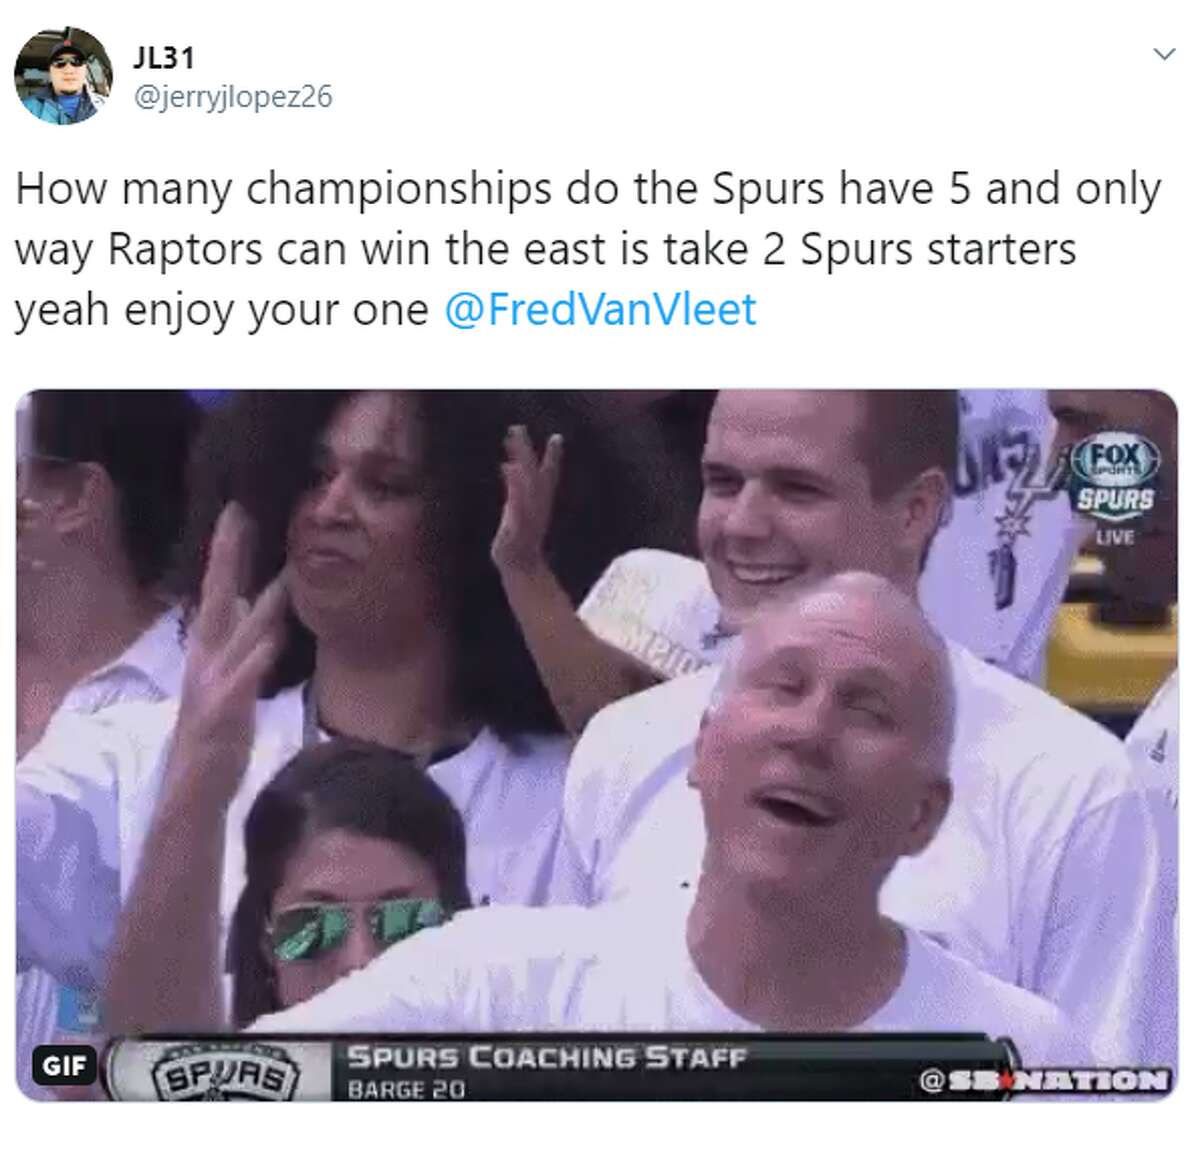 @jerrylopez26: How many championships do the Spurs have 5 and only way Raptors can win the east is take 2 Spurs starters yeah enjoy your one @FredVanVleet